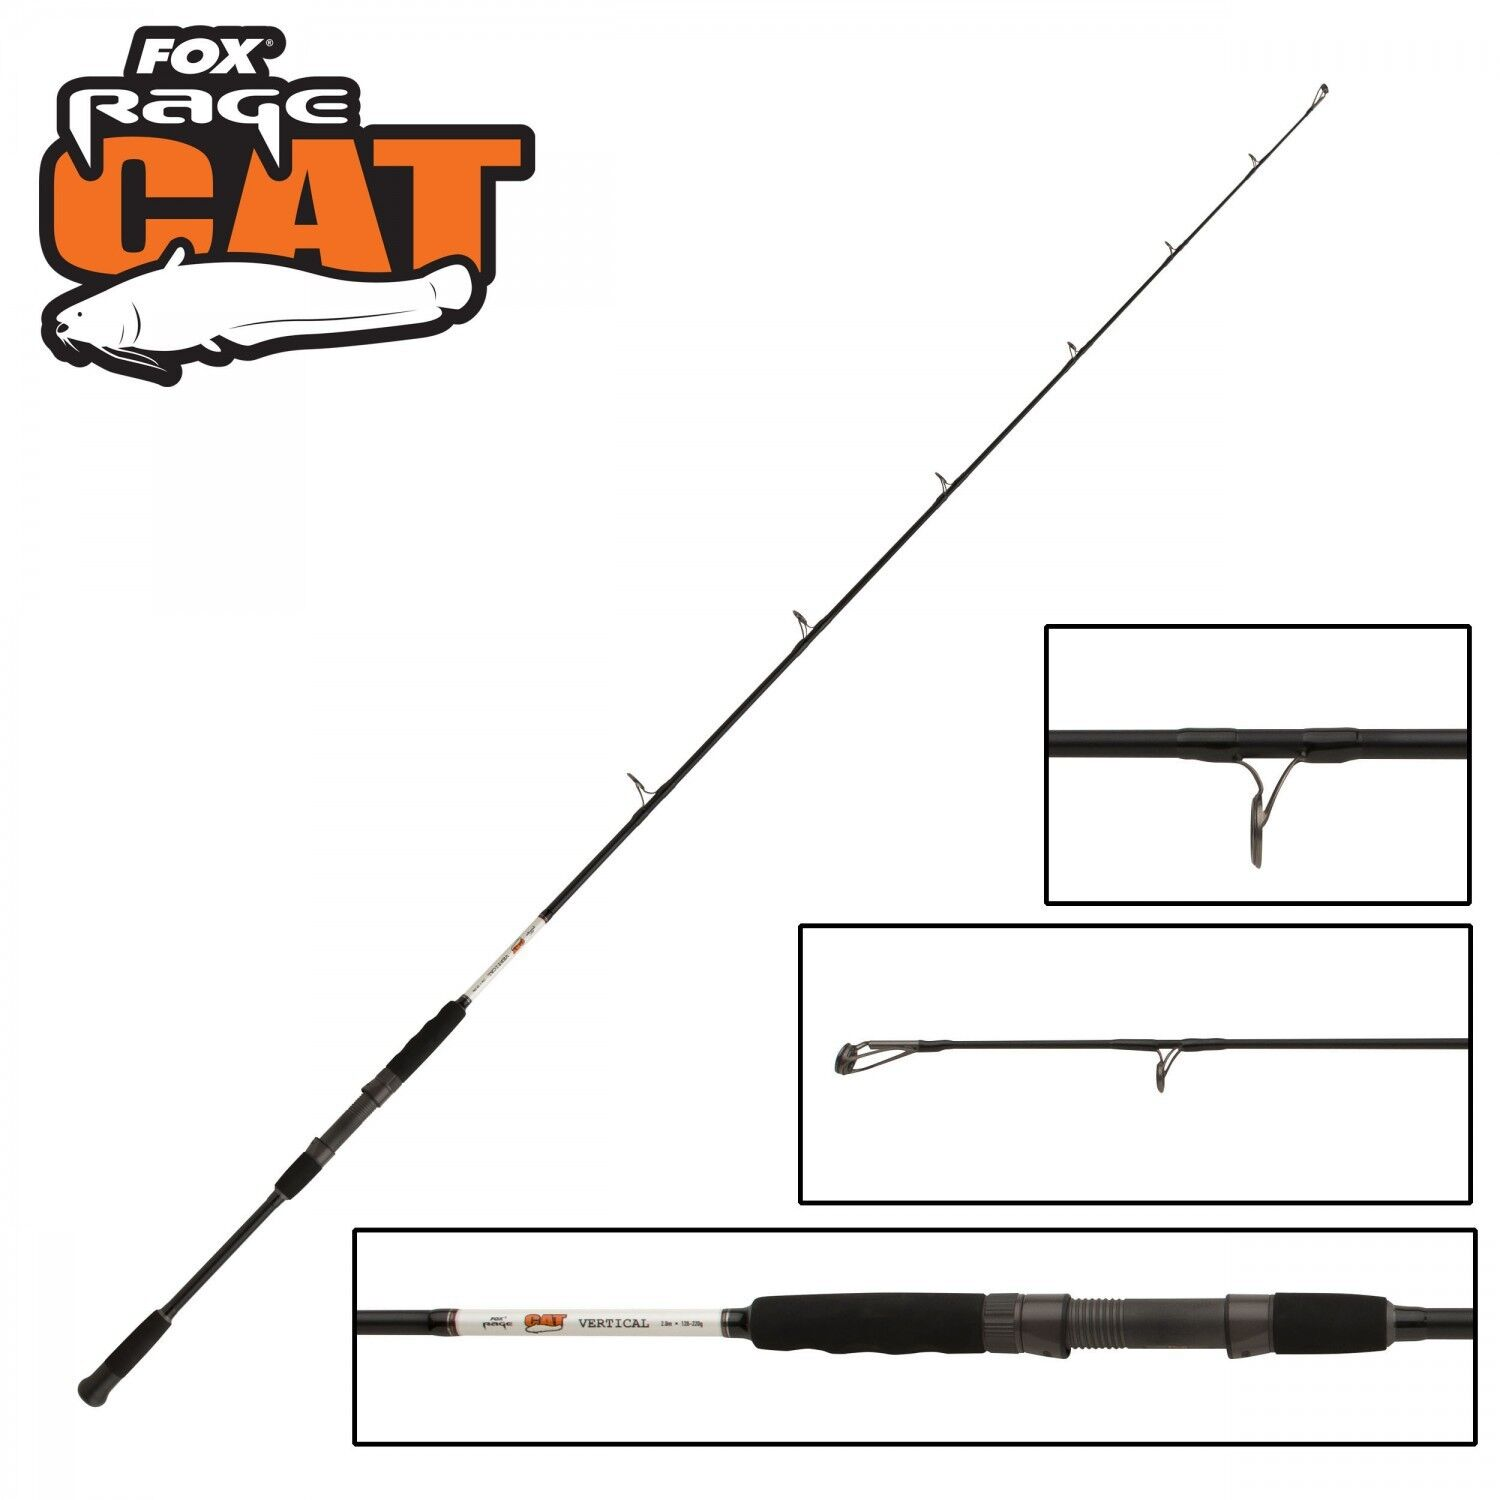 Fox Rage Cat Catfish Vertical 2,00m 120-220g, 120-220g, 120-220g, Vertikalrute für Waller, Welsrute d6fe76